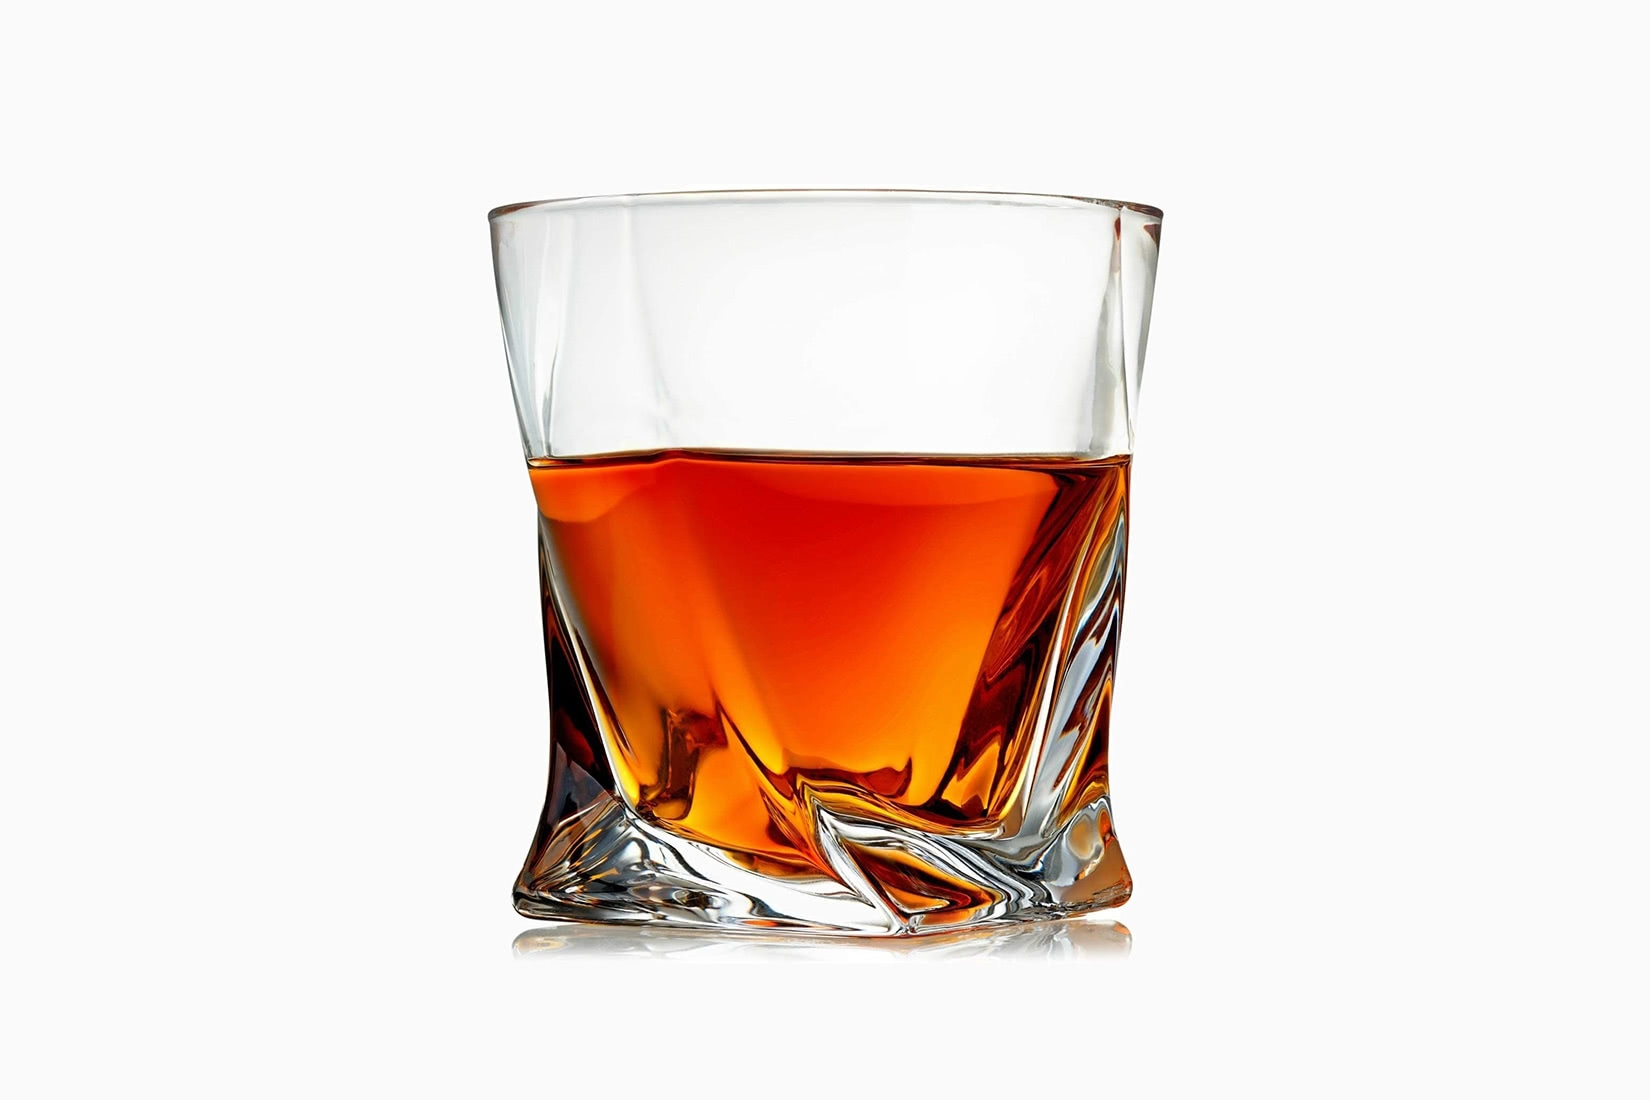 best whisky glass venero crystal - Luxe Digital